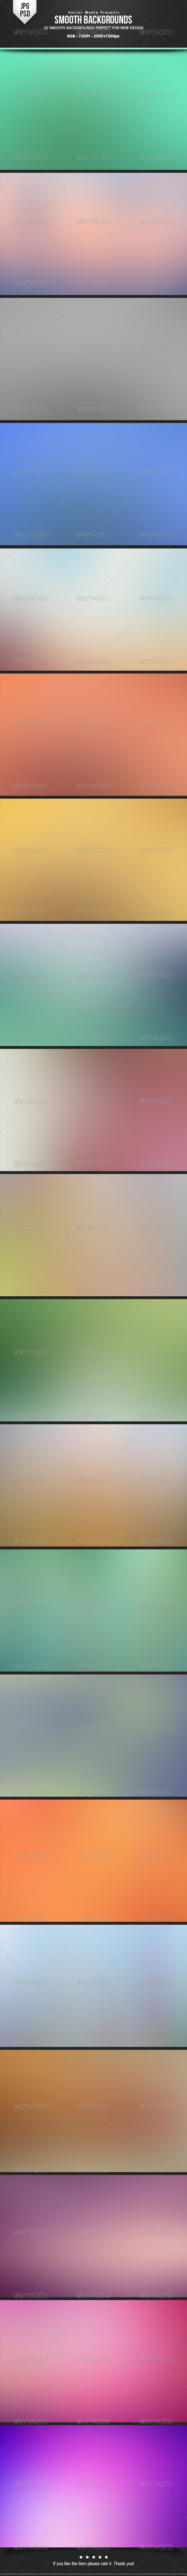 Smooth Backgrounds - Abstract Backgrounds